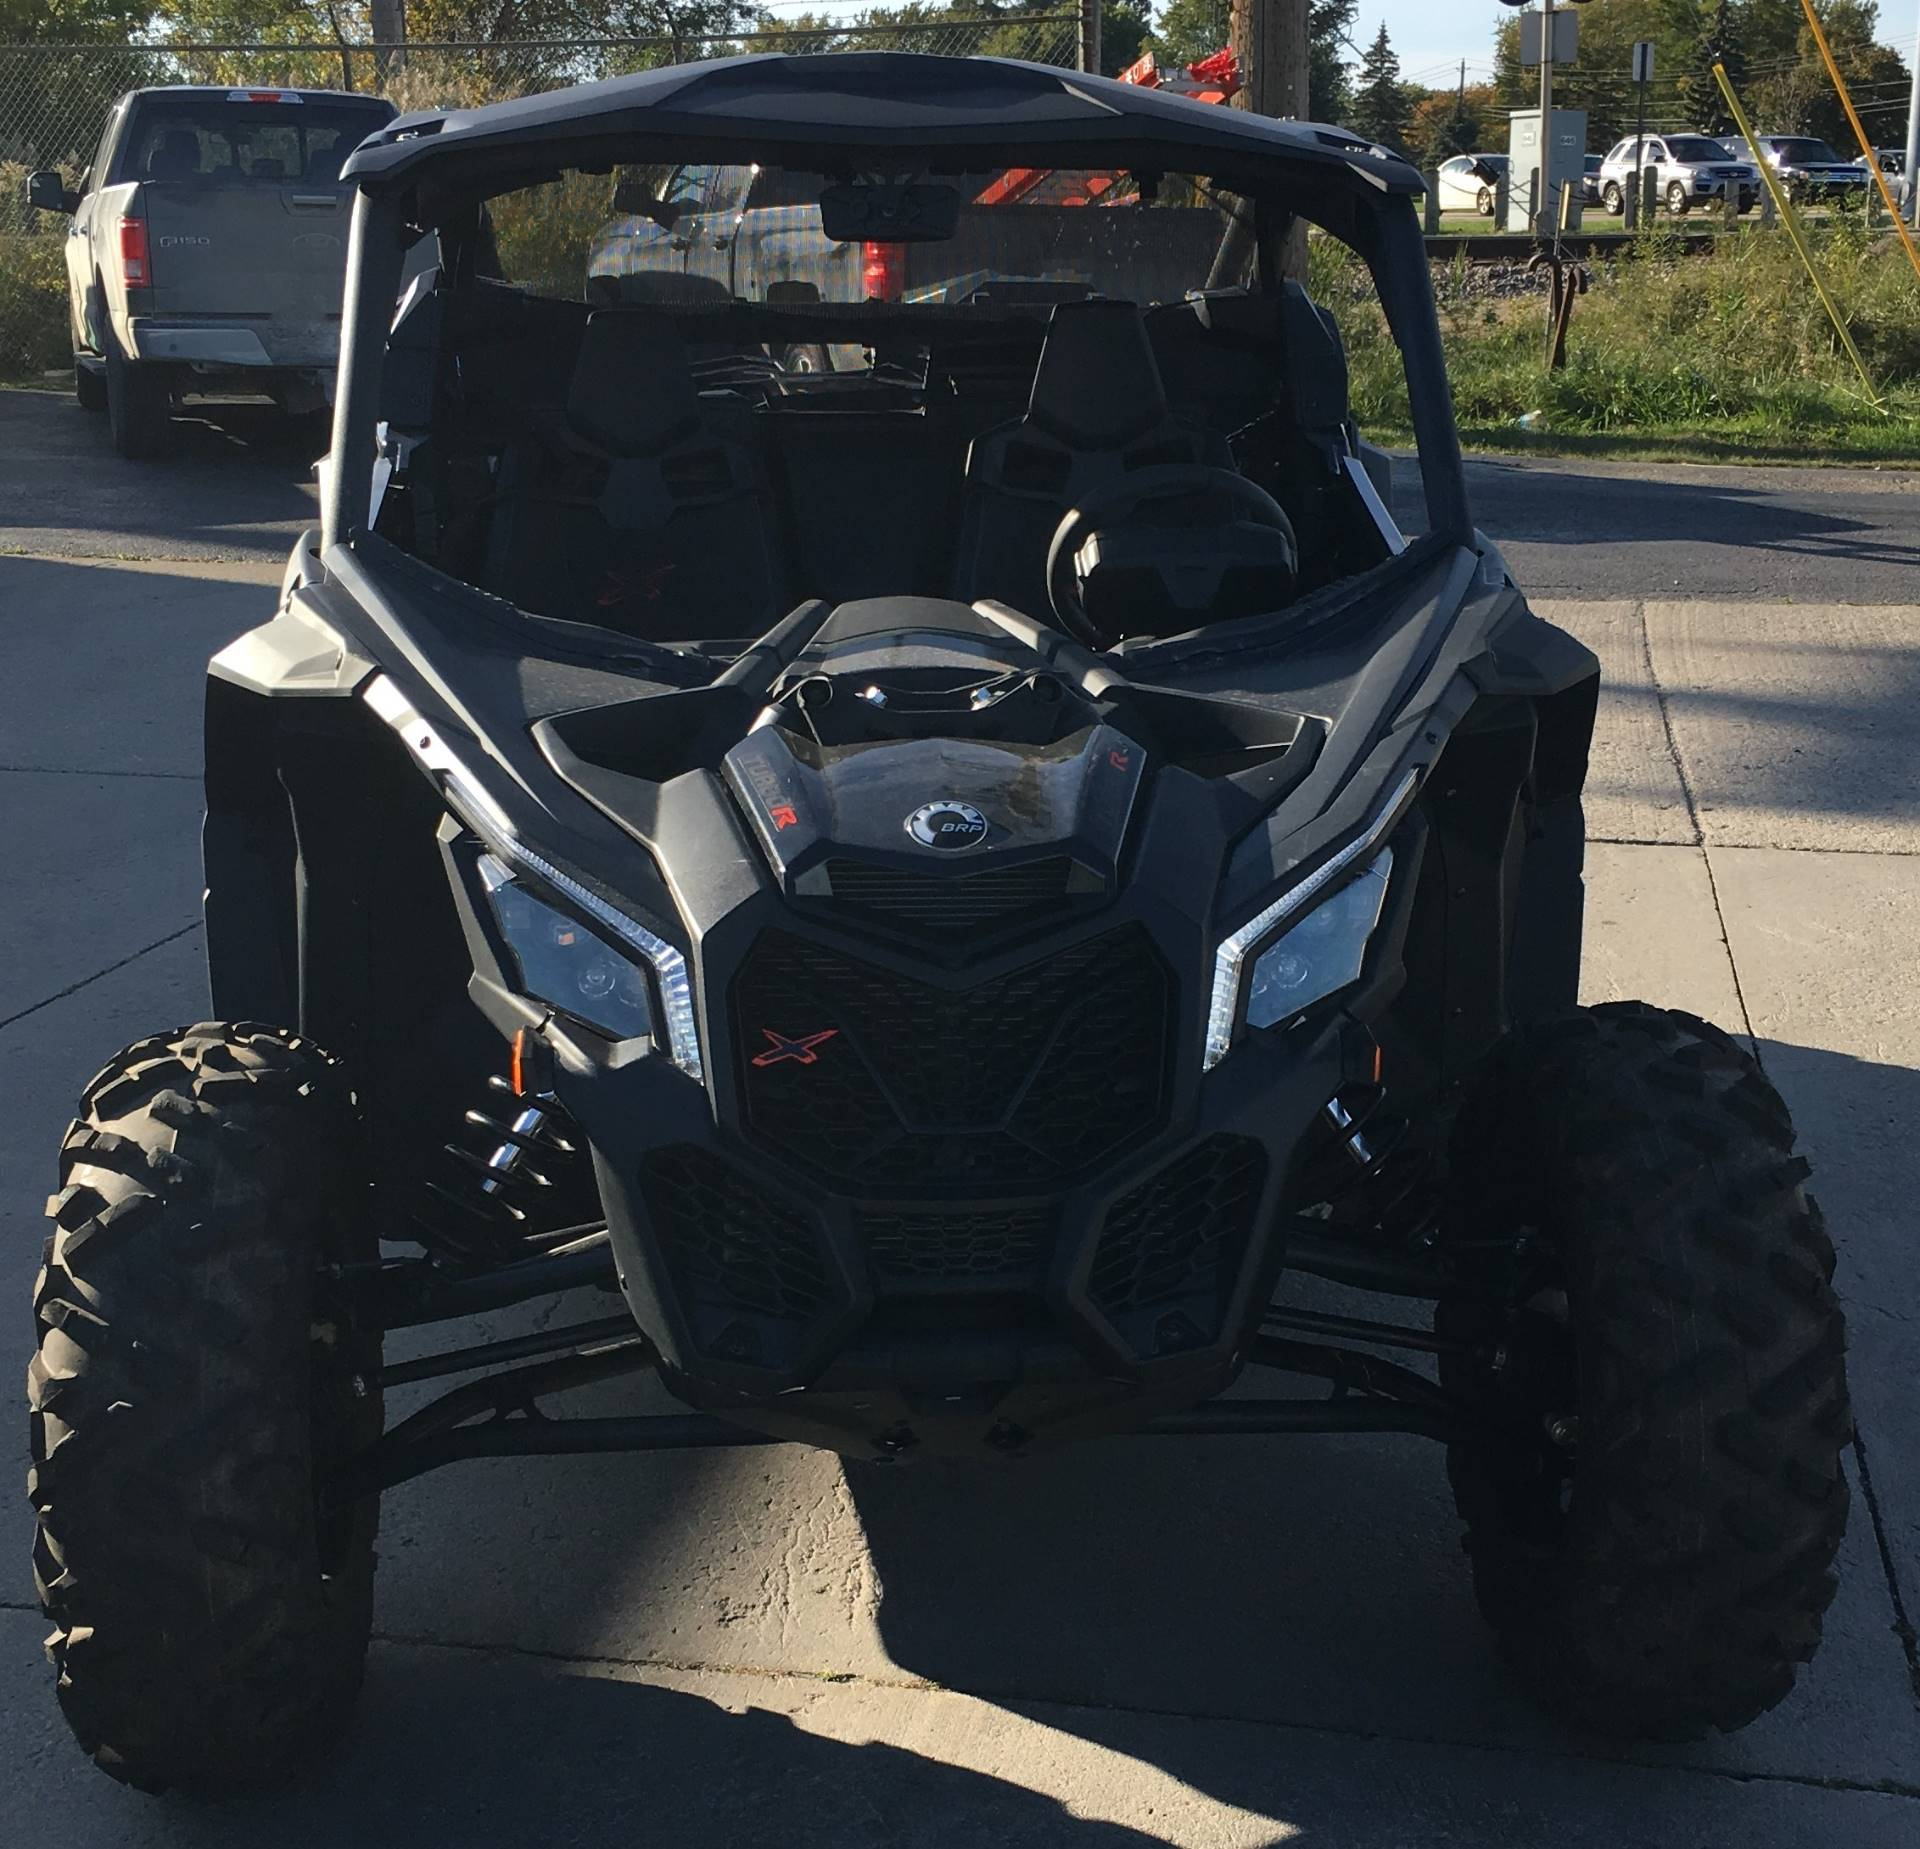 New 2017 Can-Am Maverick X3 X Ds DPS Utility Vehicles In